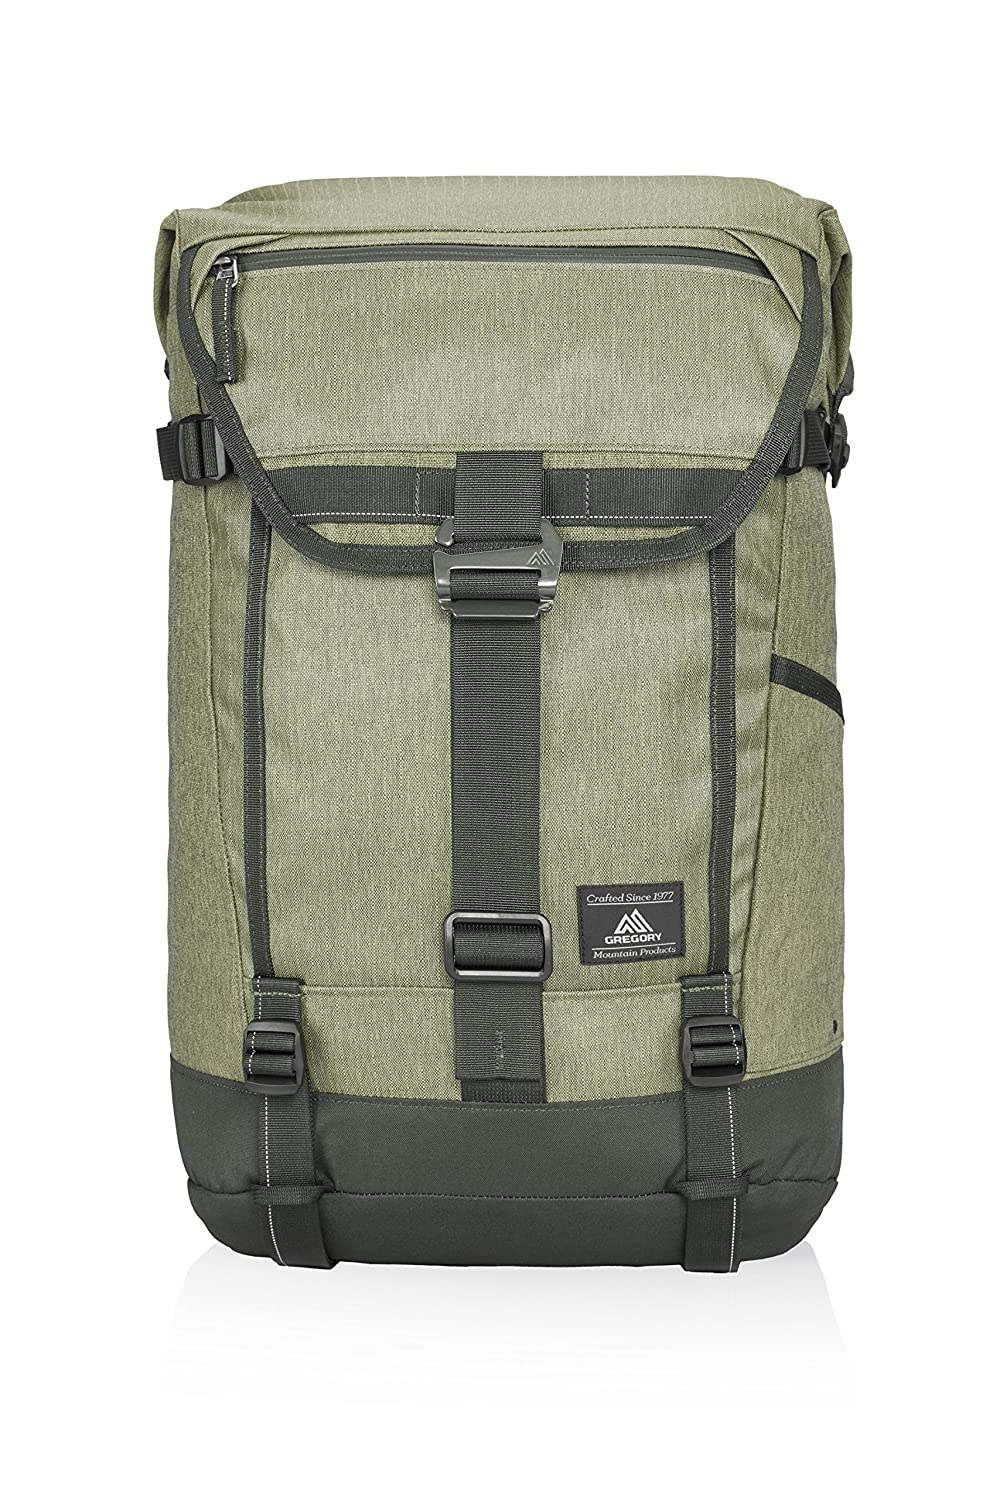 Gregory Mountain Products I-Street Hiking Daypacks